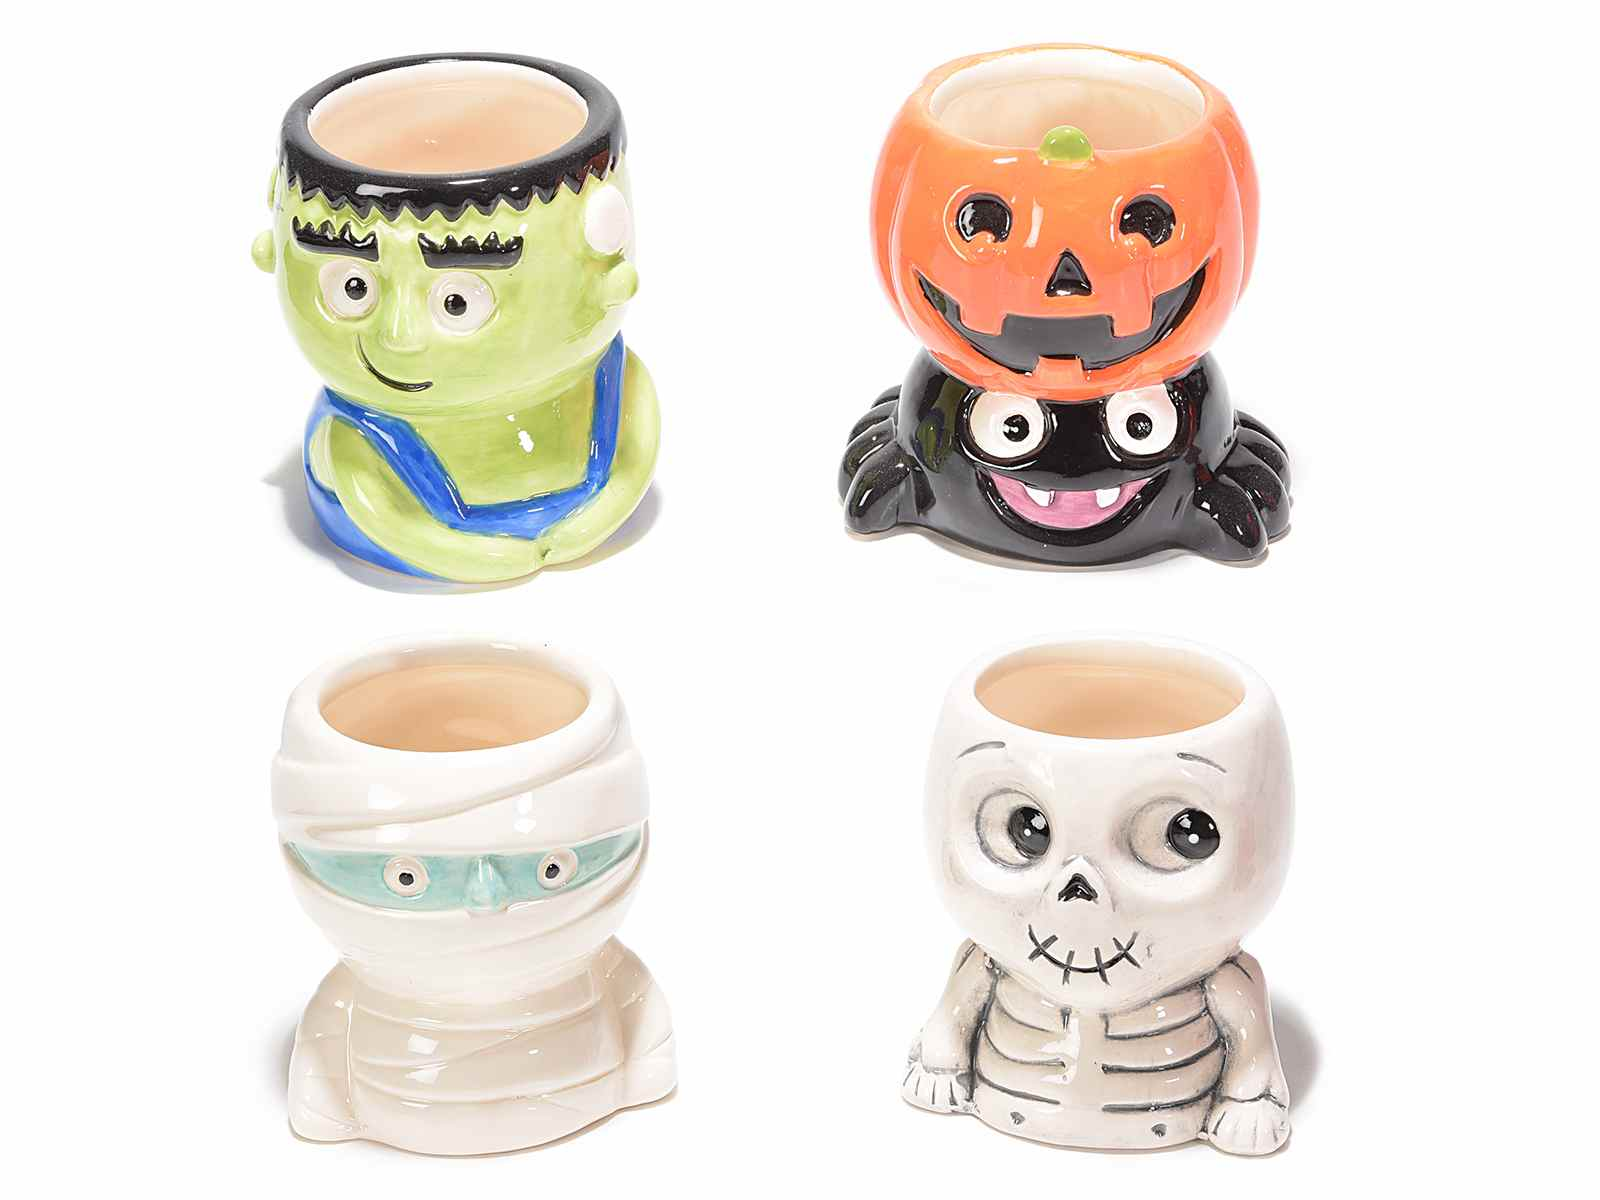 Candle Holder Halloween Character Shaped 71 35 47 Art From Italy